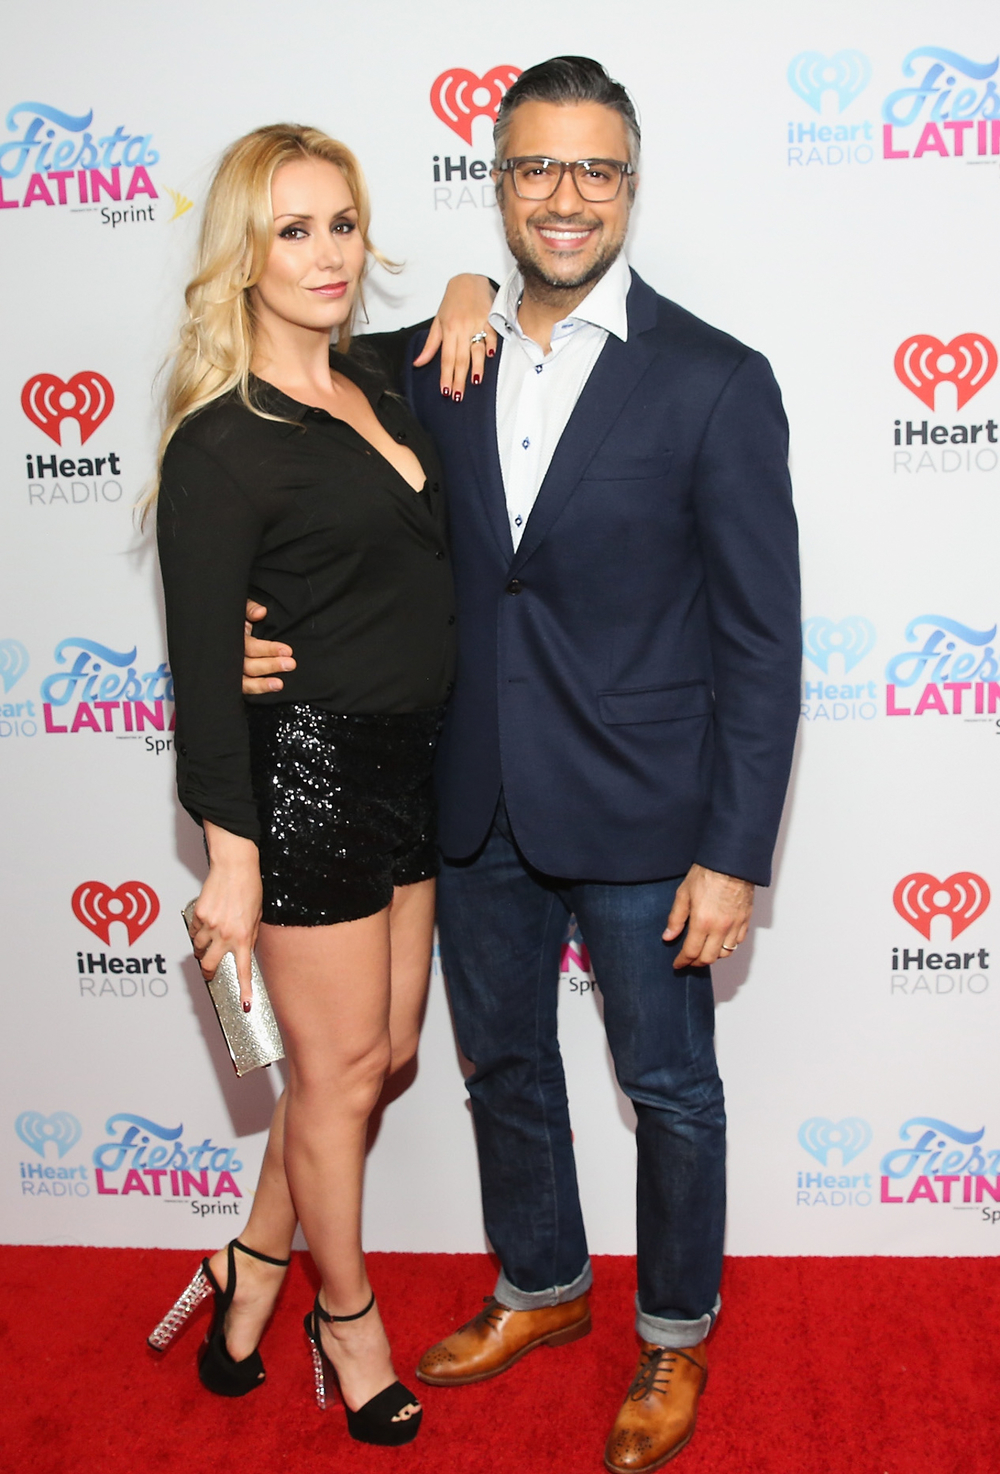 MIAMI, FL - NOVEMBER 07:  Heidi Balvanera (L) and actor Jamie Camil attend iHeartRadio Fiesta Latina presented by Sprint at American Airlines Arena on November 7, 2015 in Miami, Florida.  (Photo by Aaron Davidson/Getty Images for iHeartMedia) *** Local Caption *** Jaime Camil